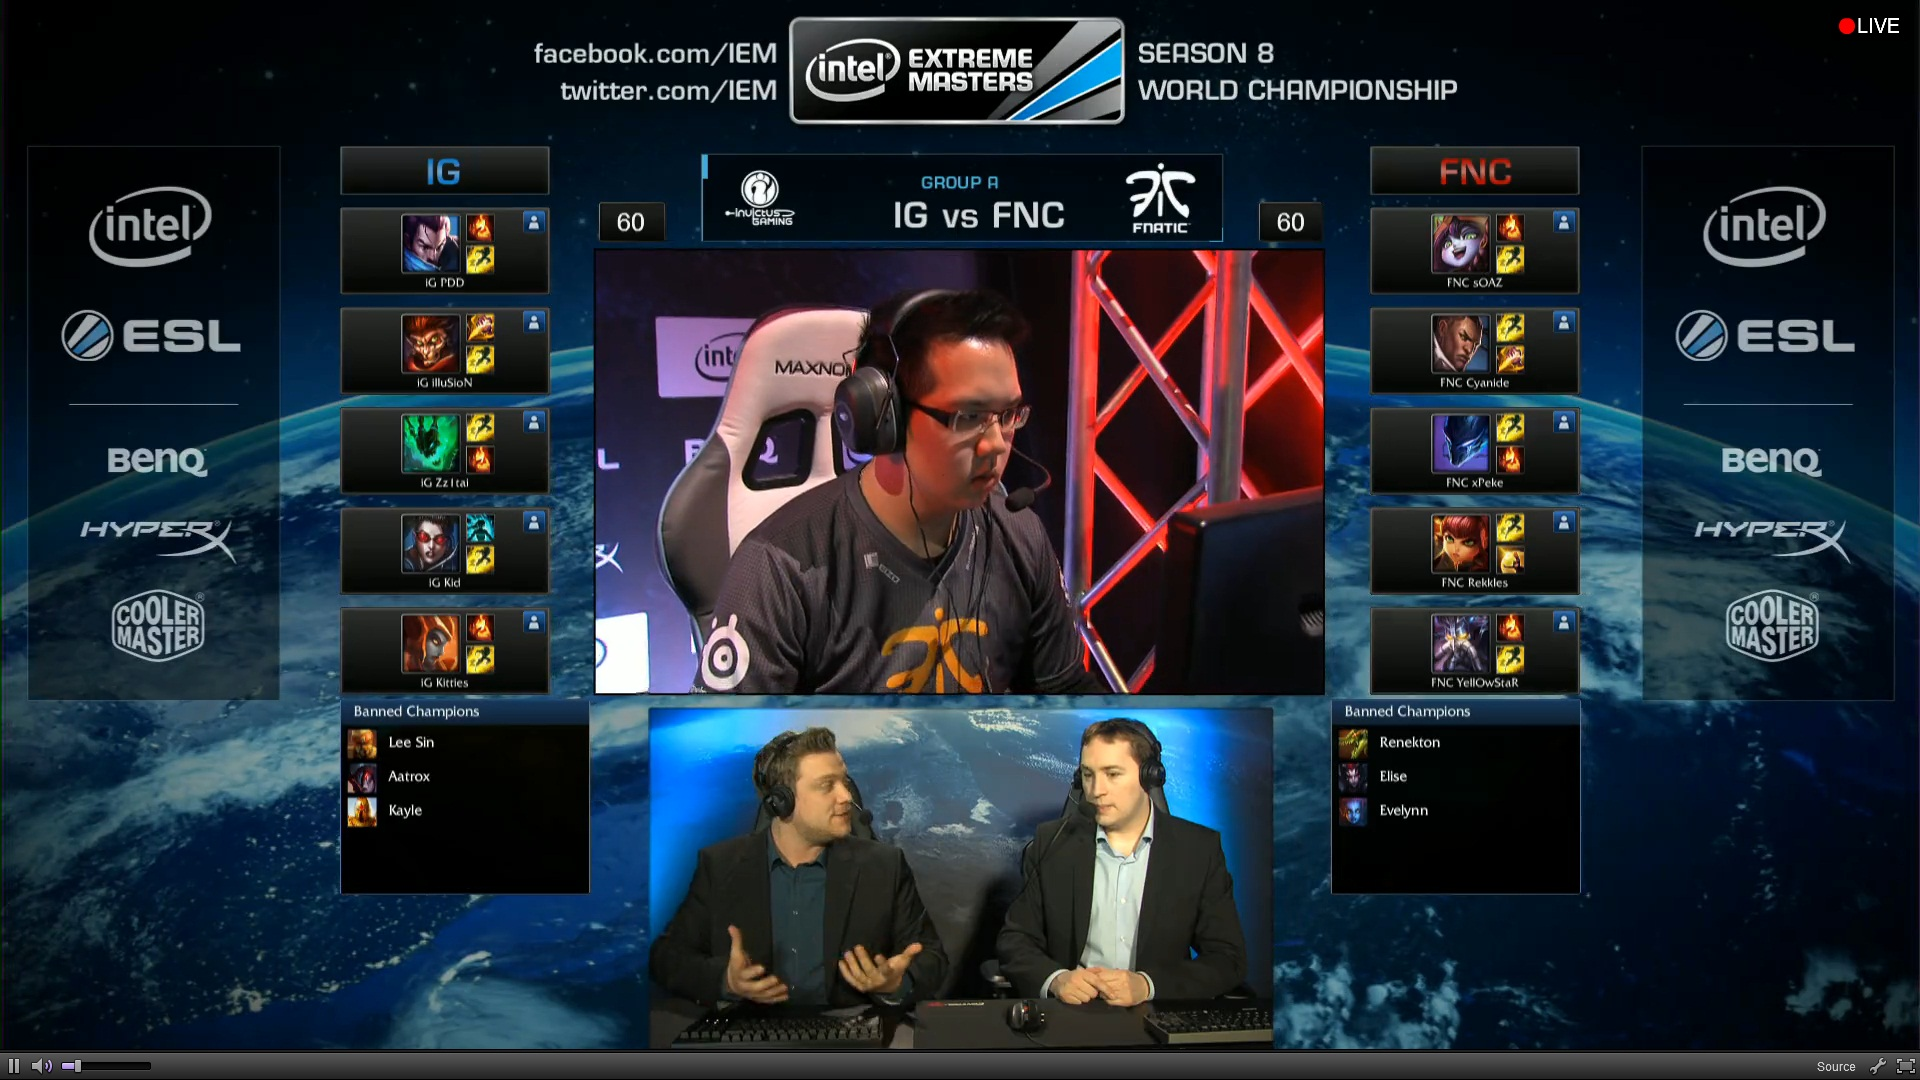 IG vs Fnatic GROUPE A